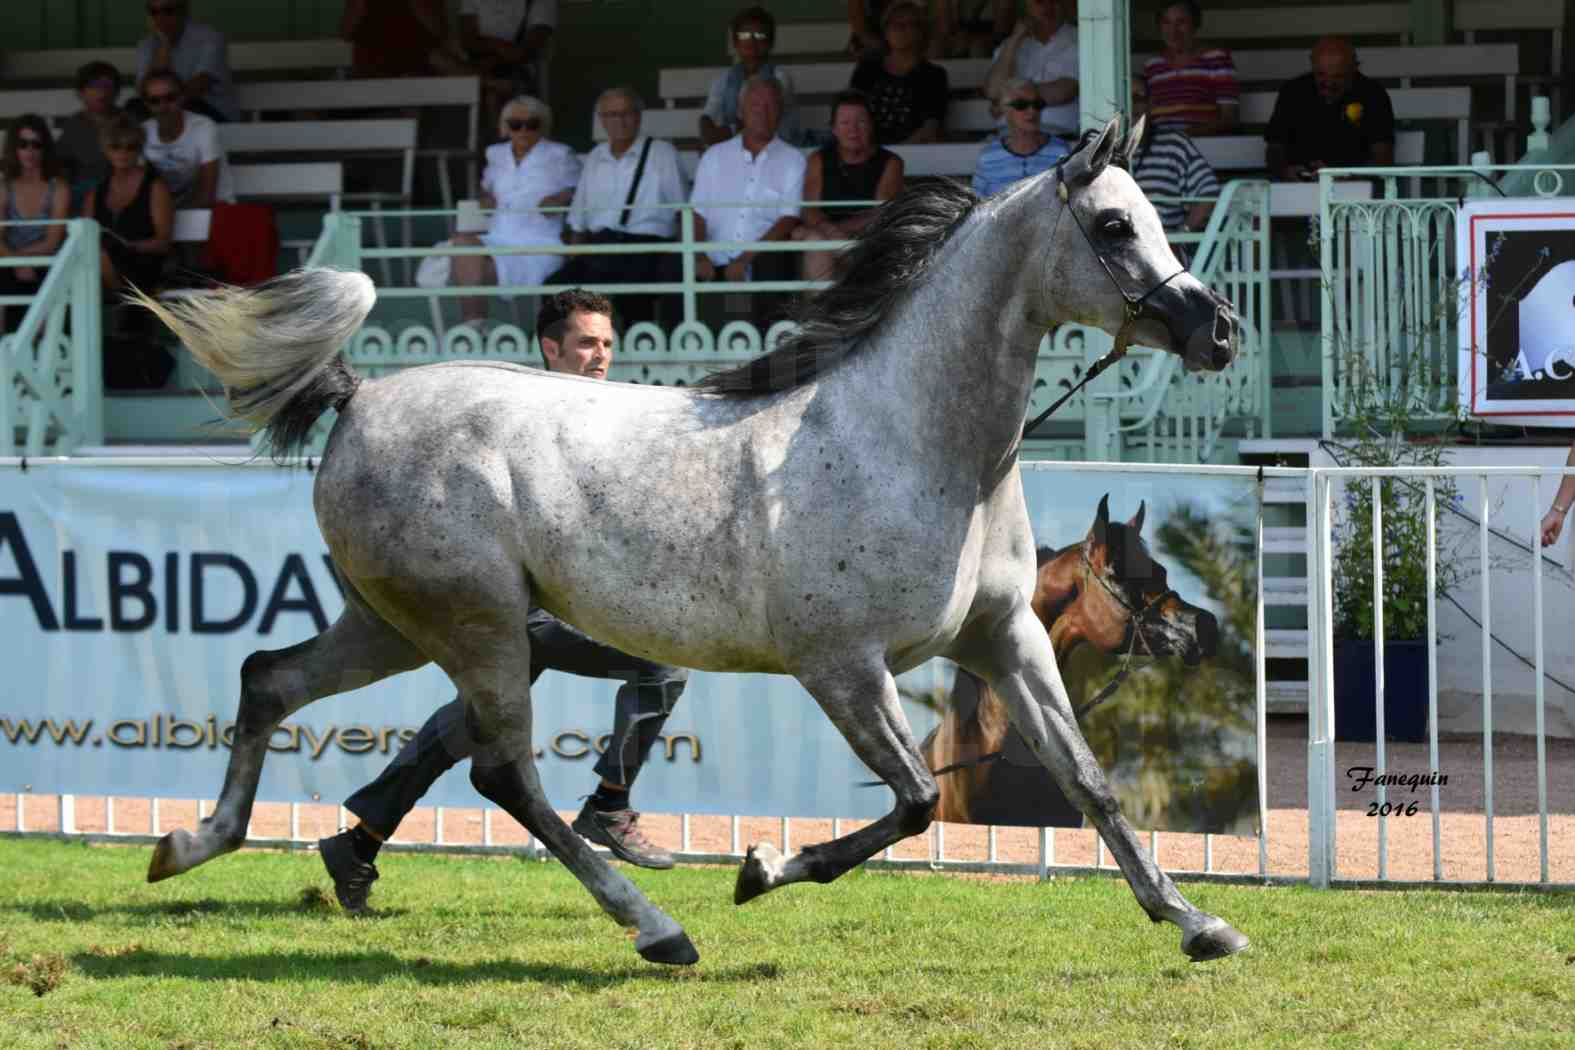 International Arabian Horse Show B de VICHY 2016 - ISABELLA